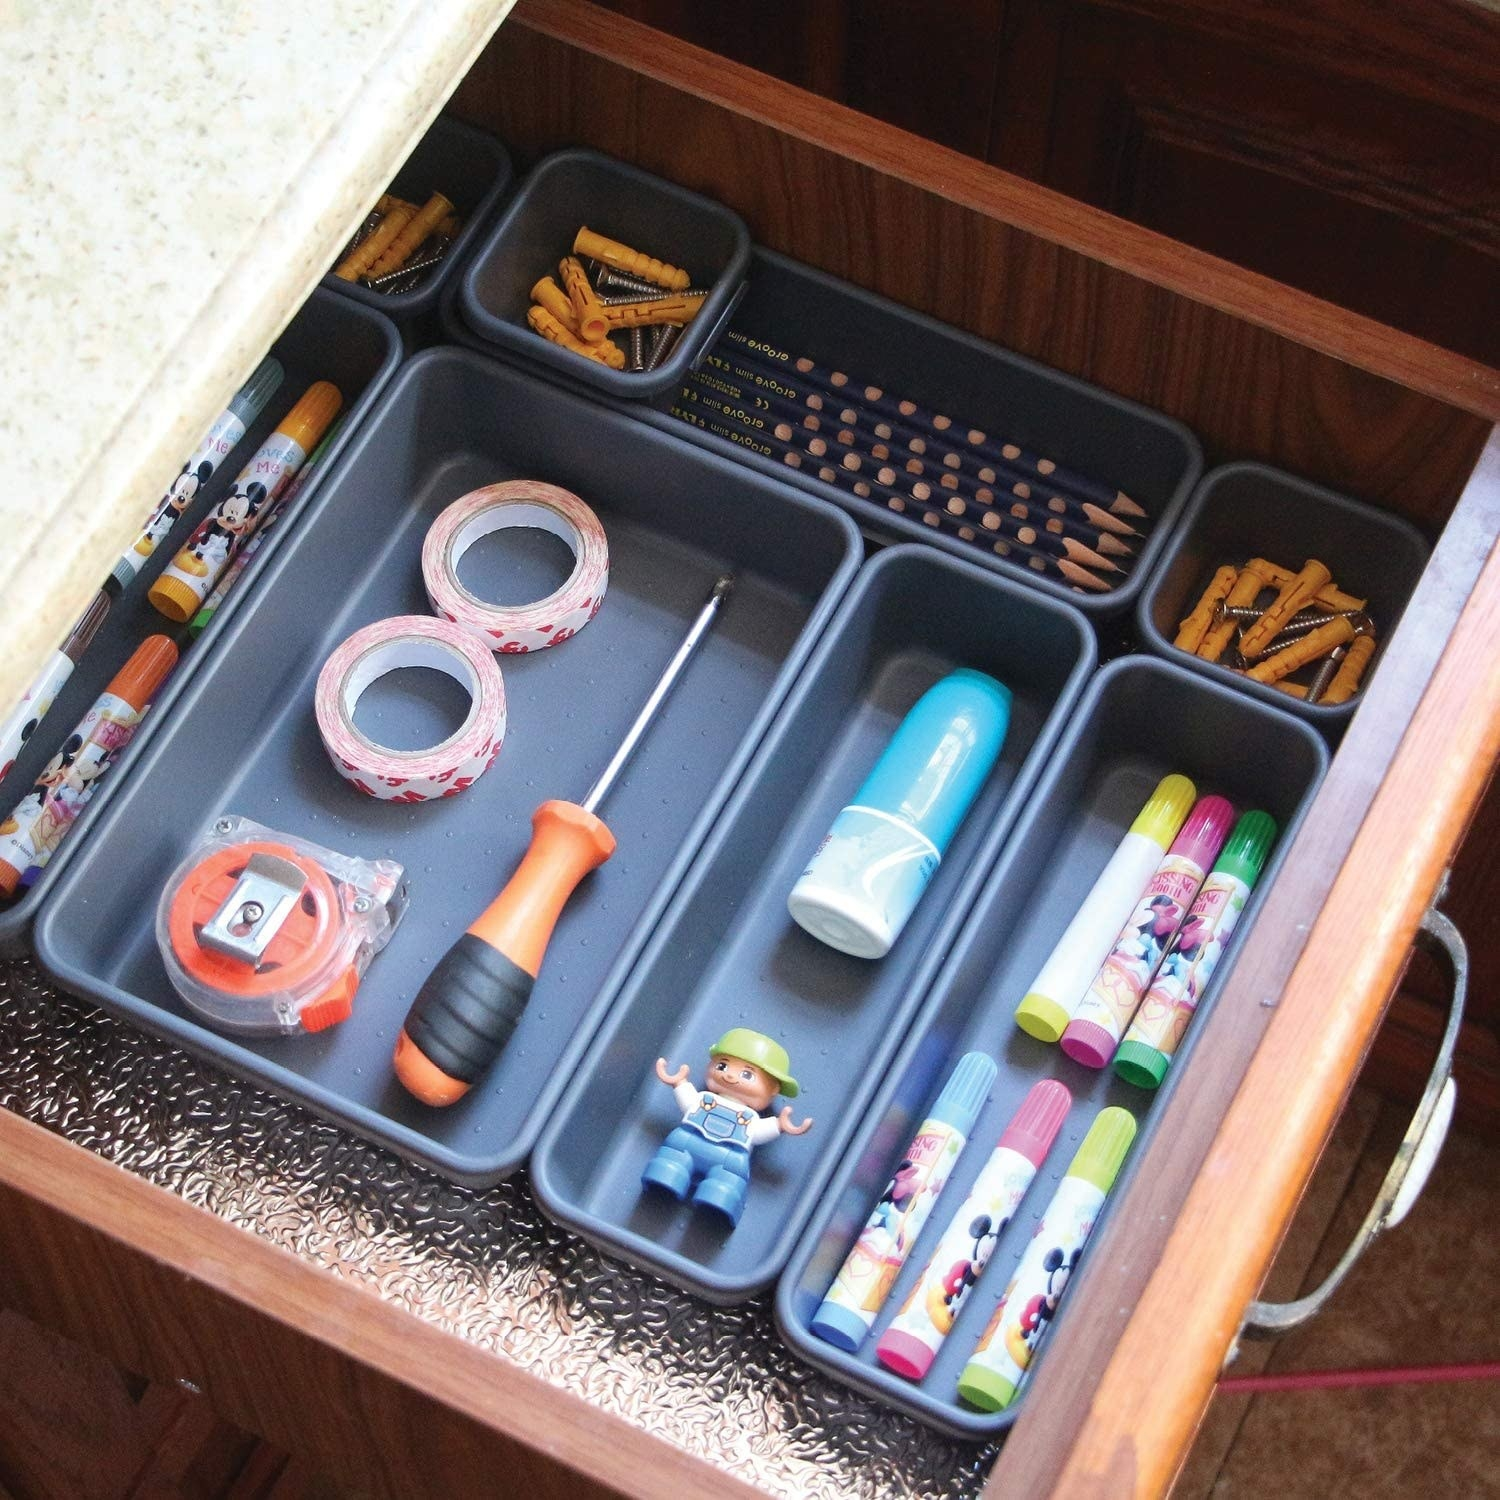 A set of gray plastic drawer organizers filled with pens, pencils, and tape